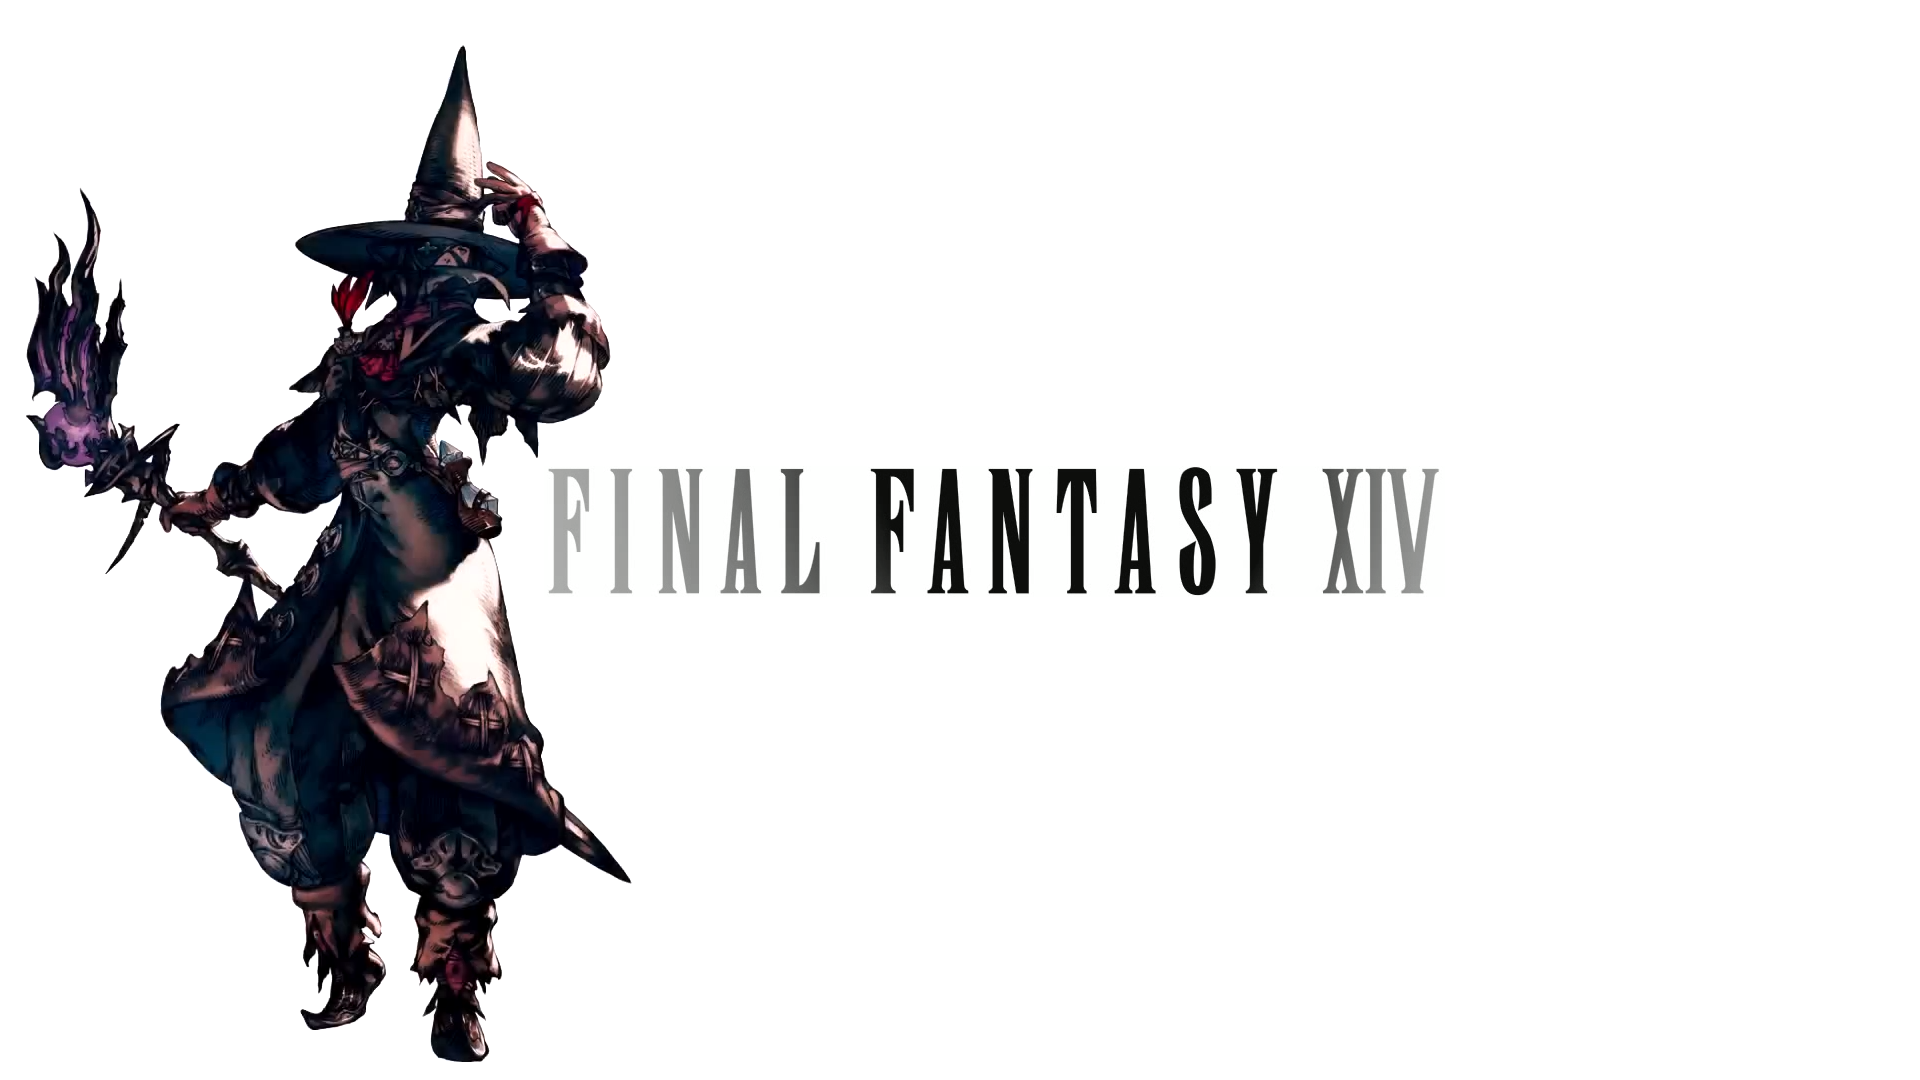 Final Fantasy XIV Wallpapers Pictures Images 1920x1080